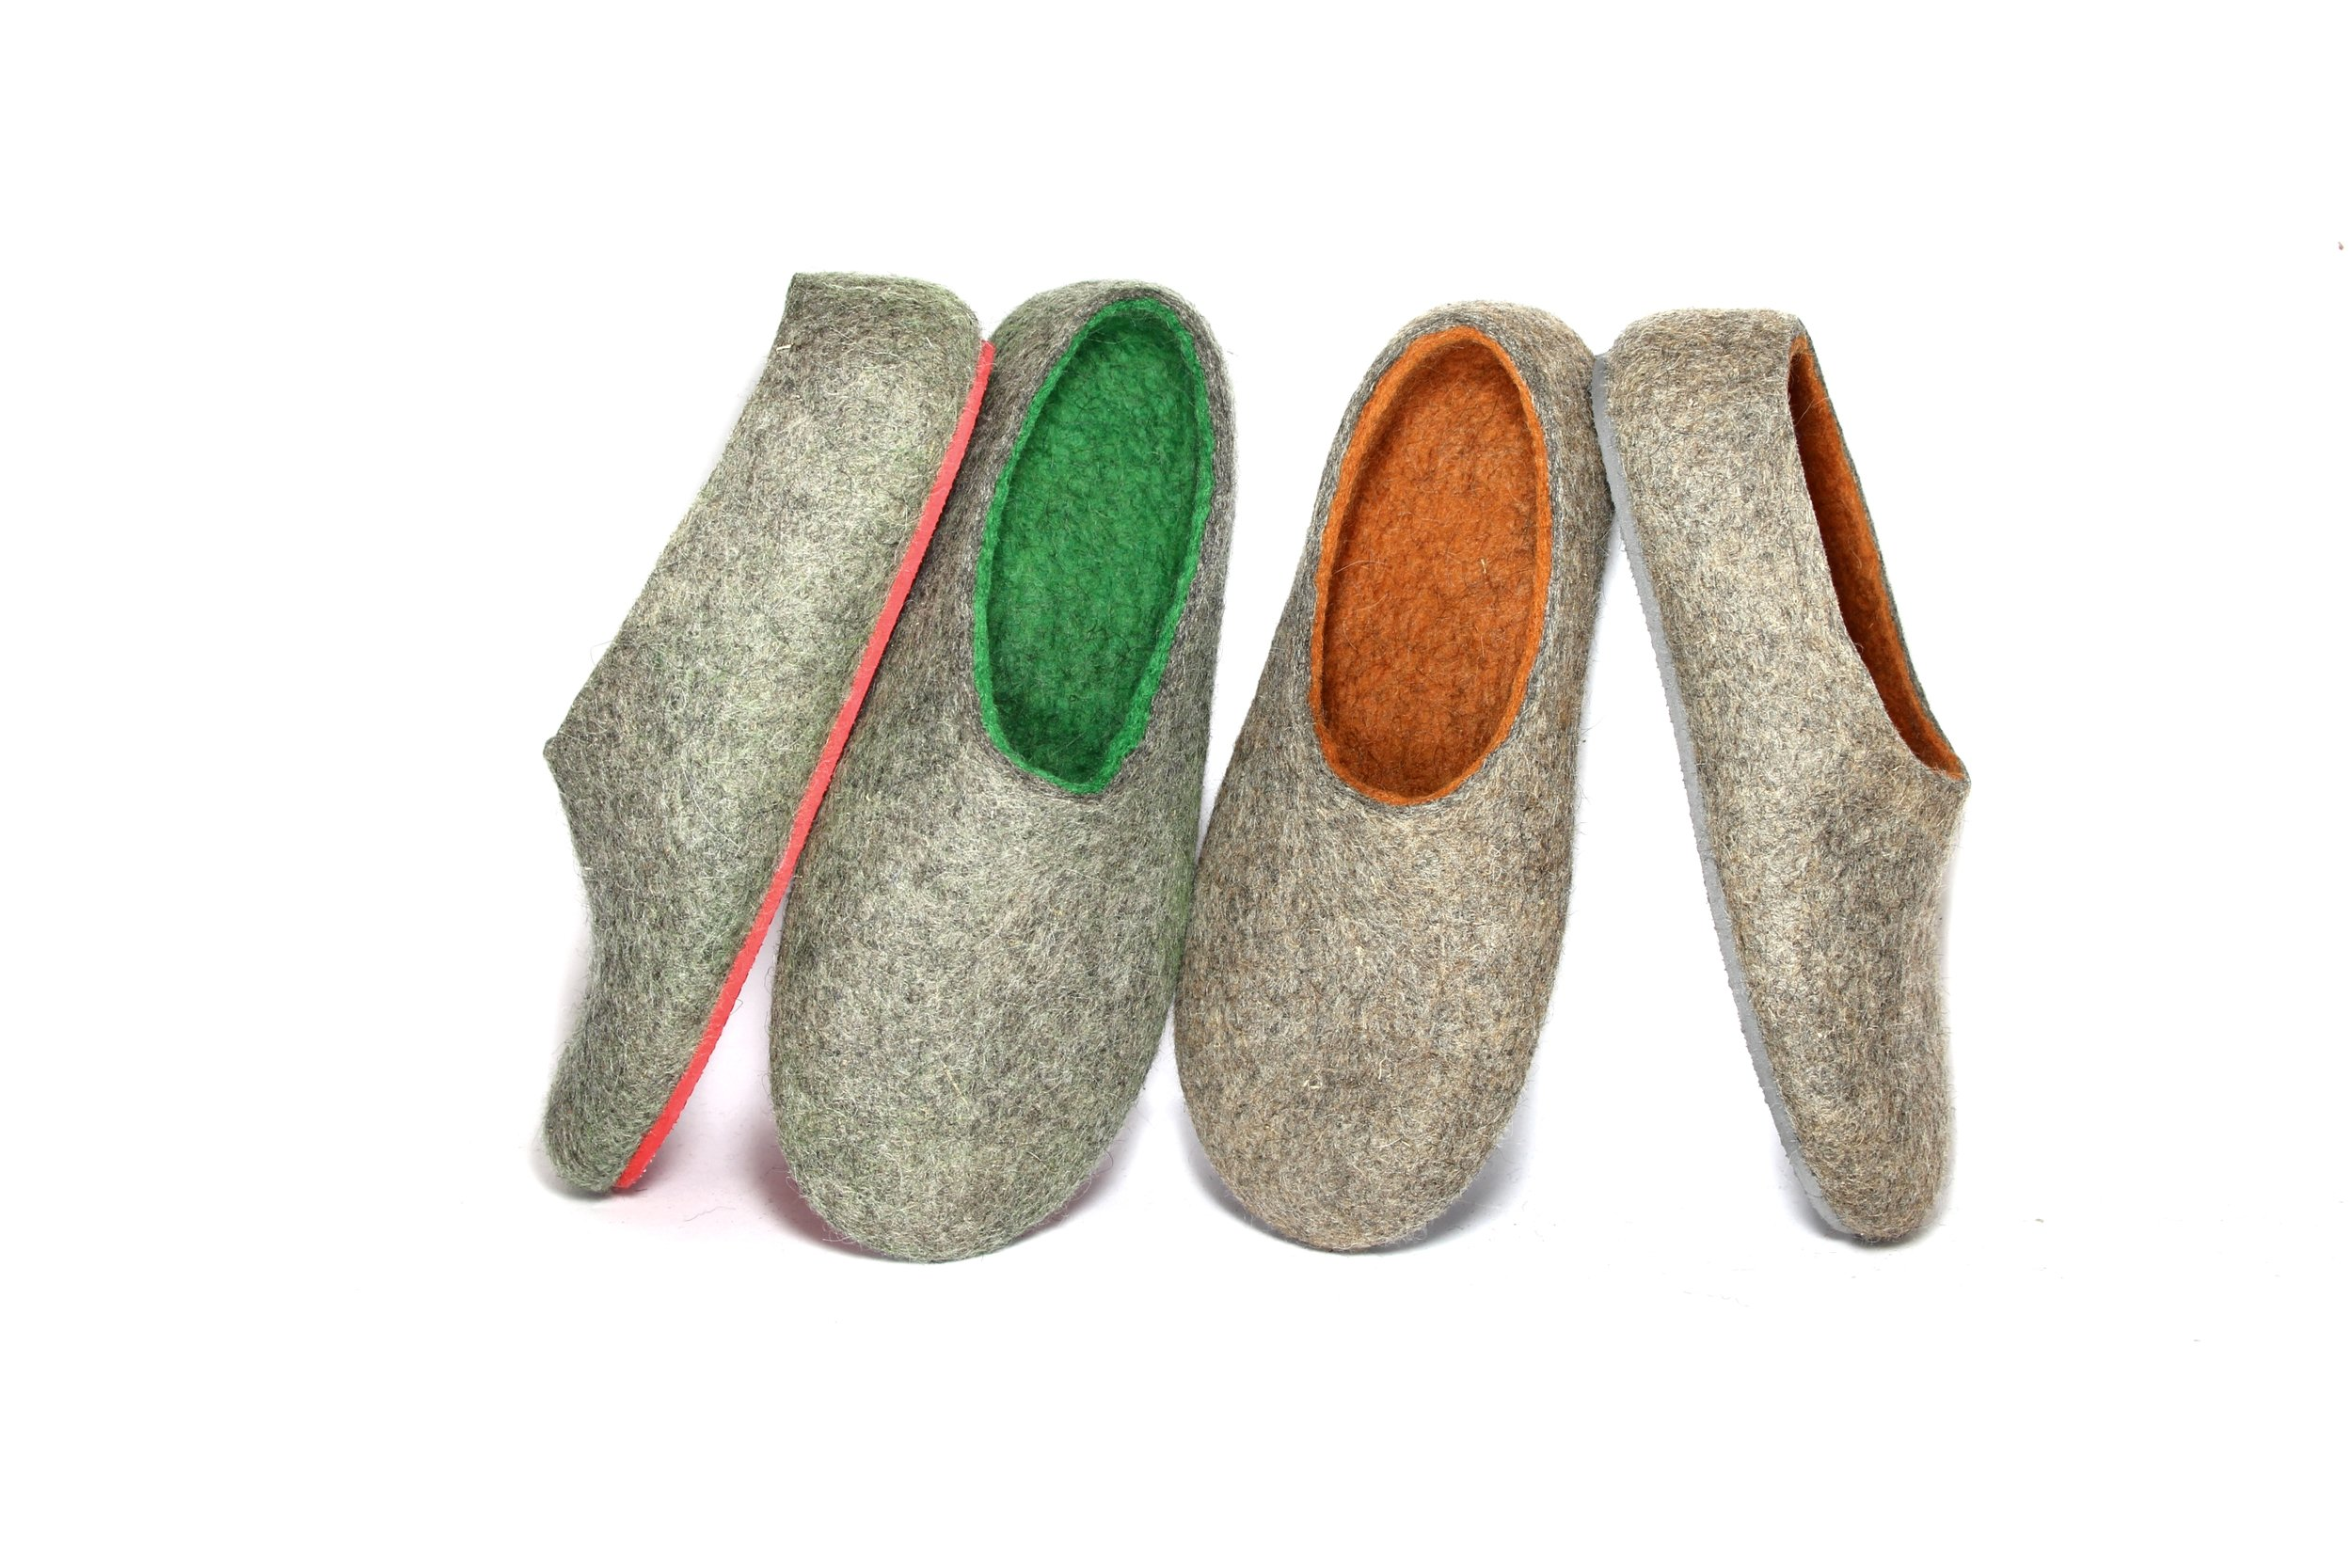 Greenery Orange Felt Forma Wool Shoes.jpg